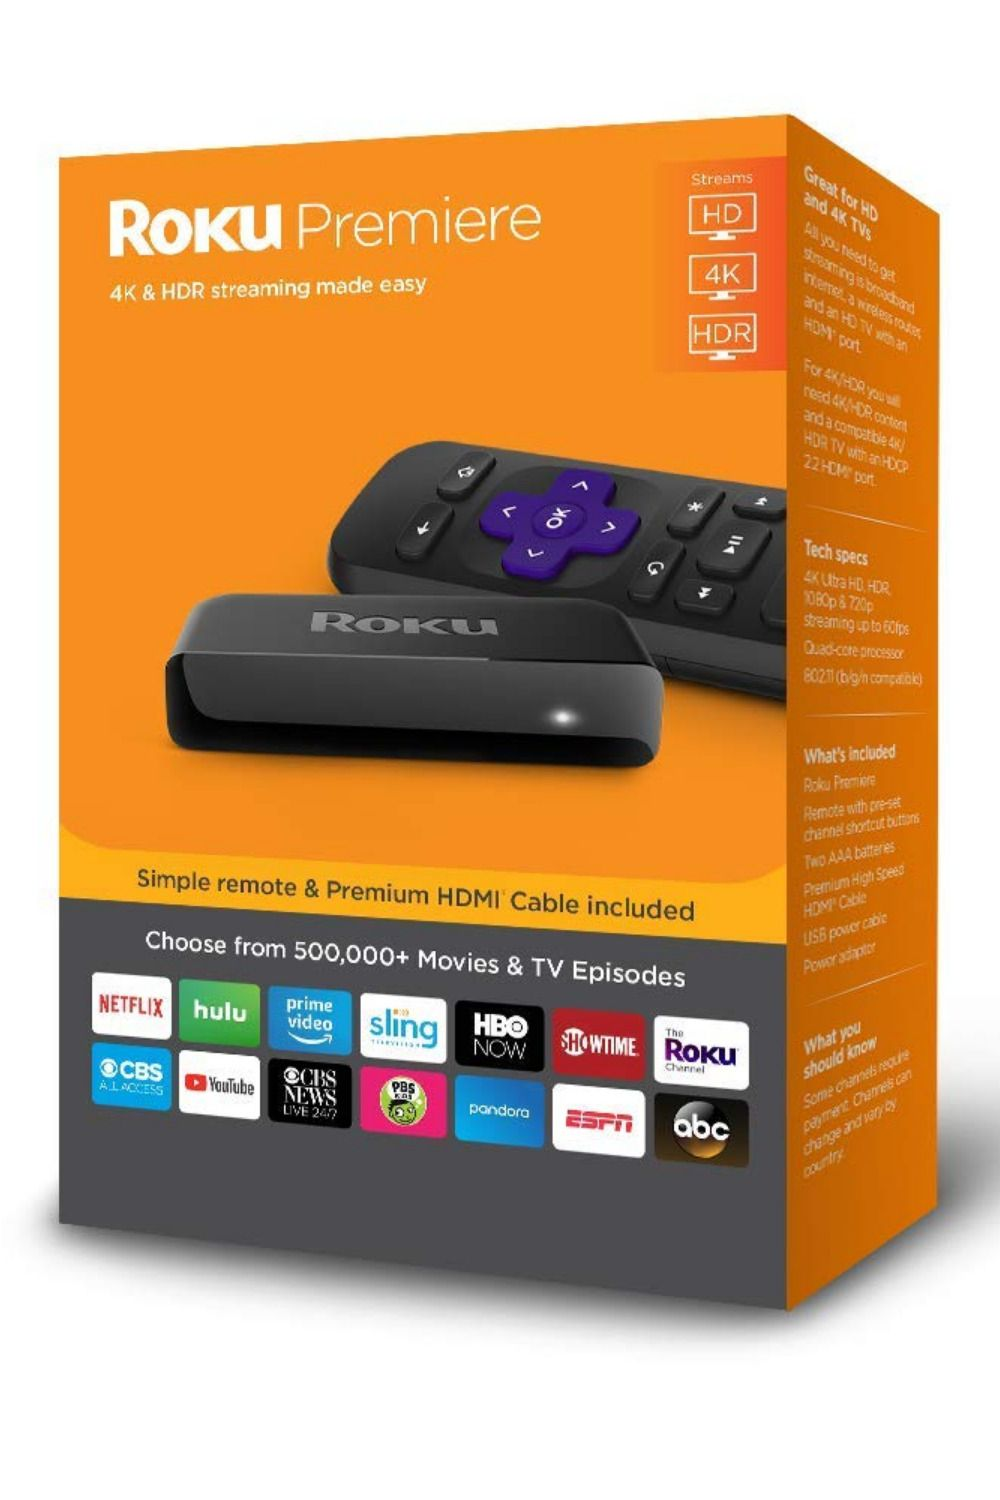 The new Roku Premiere is the simple way to start streaming